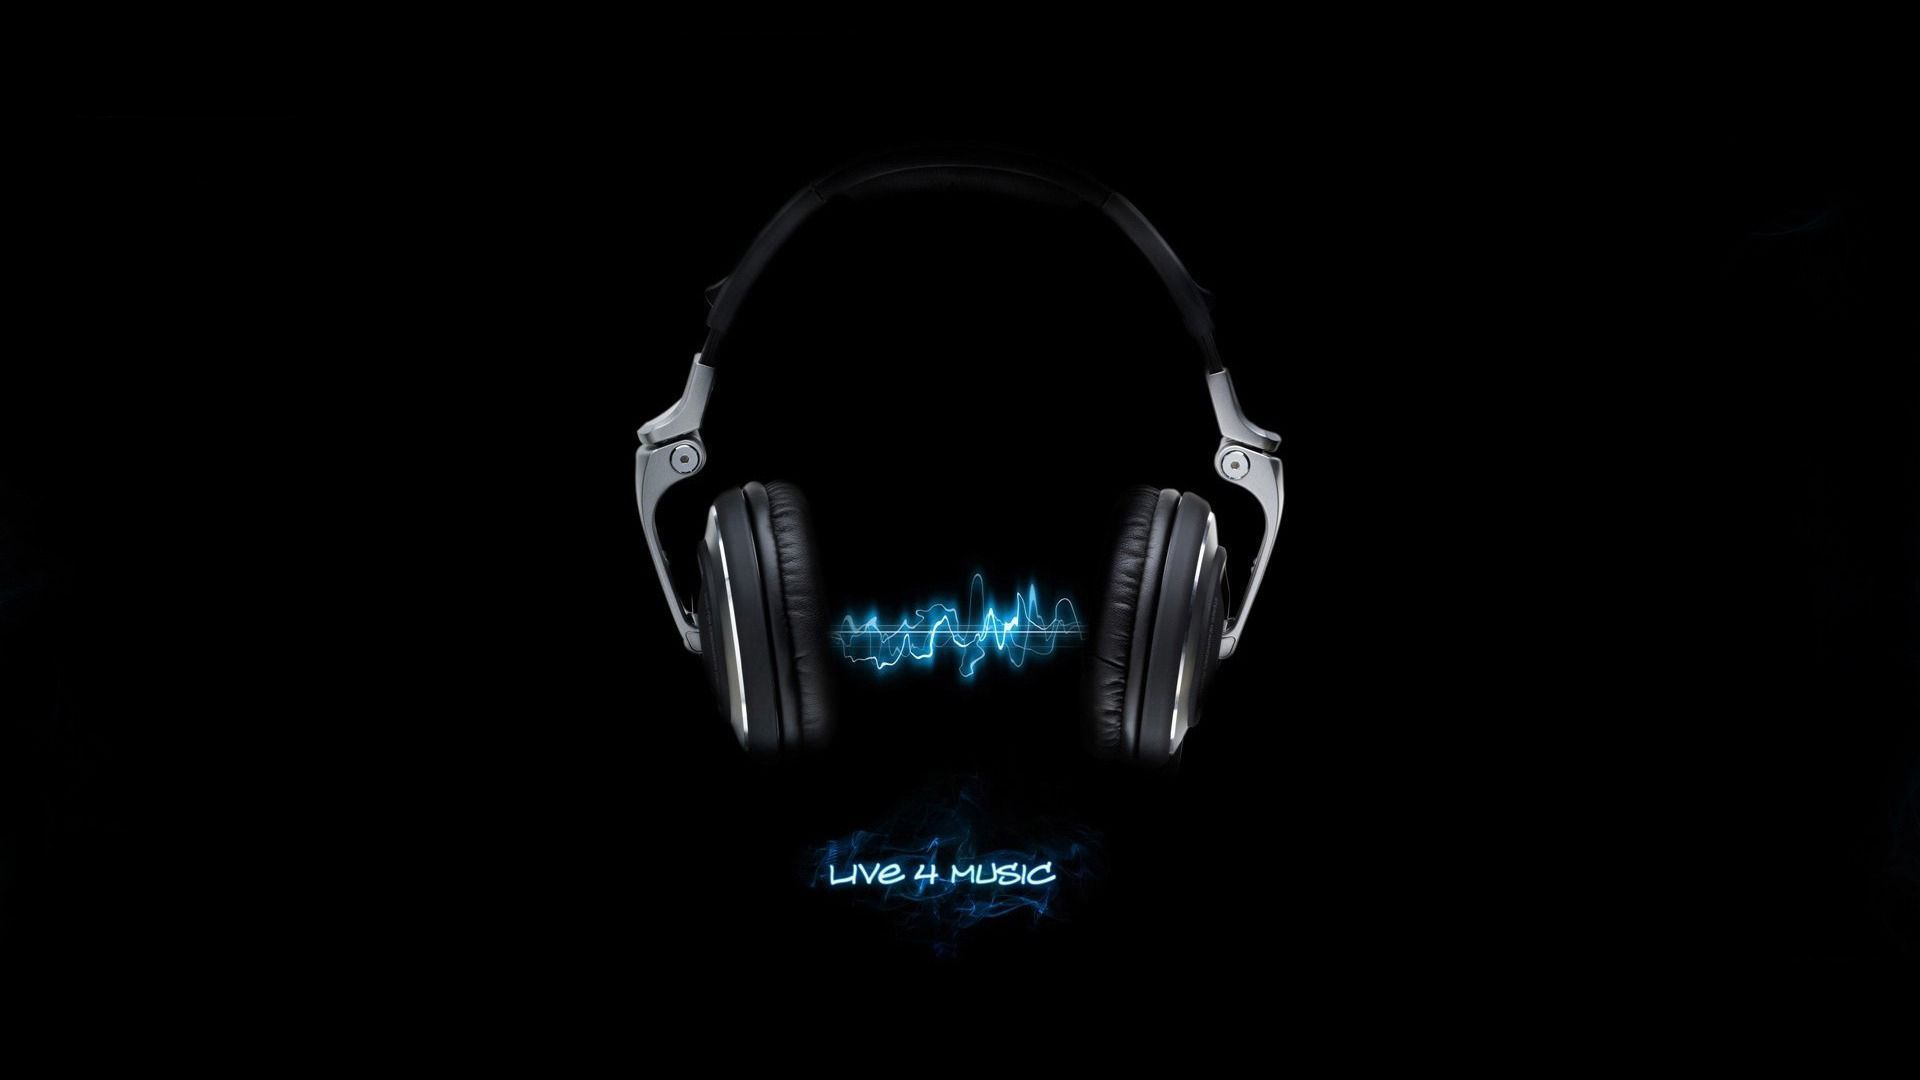 I Love House Music Wallpapers Wallpaper Cave музыкальные